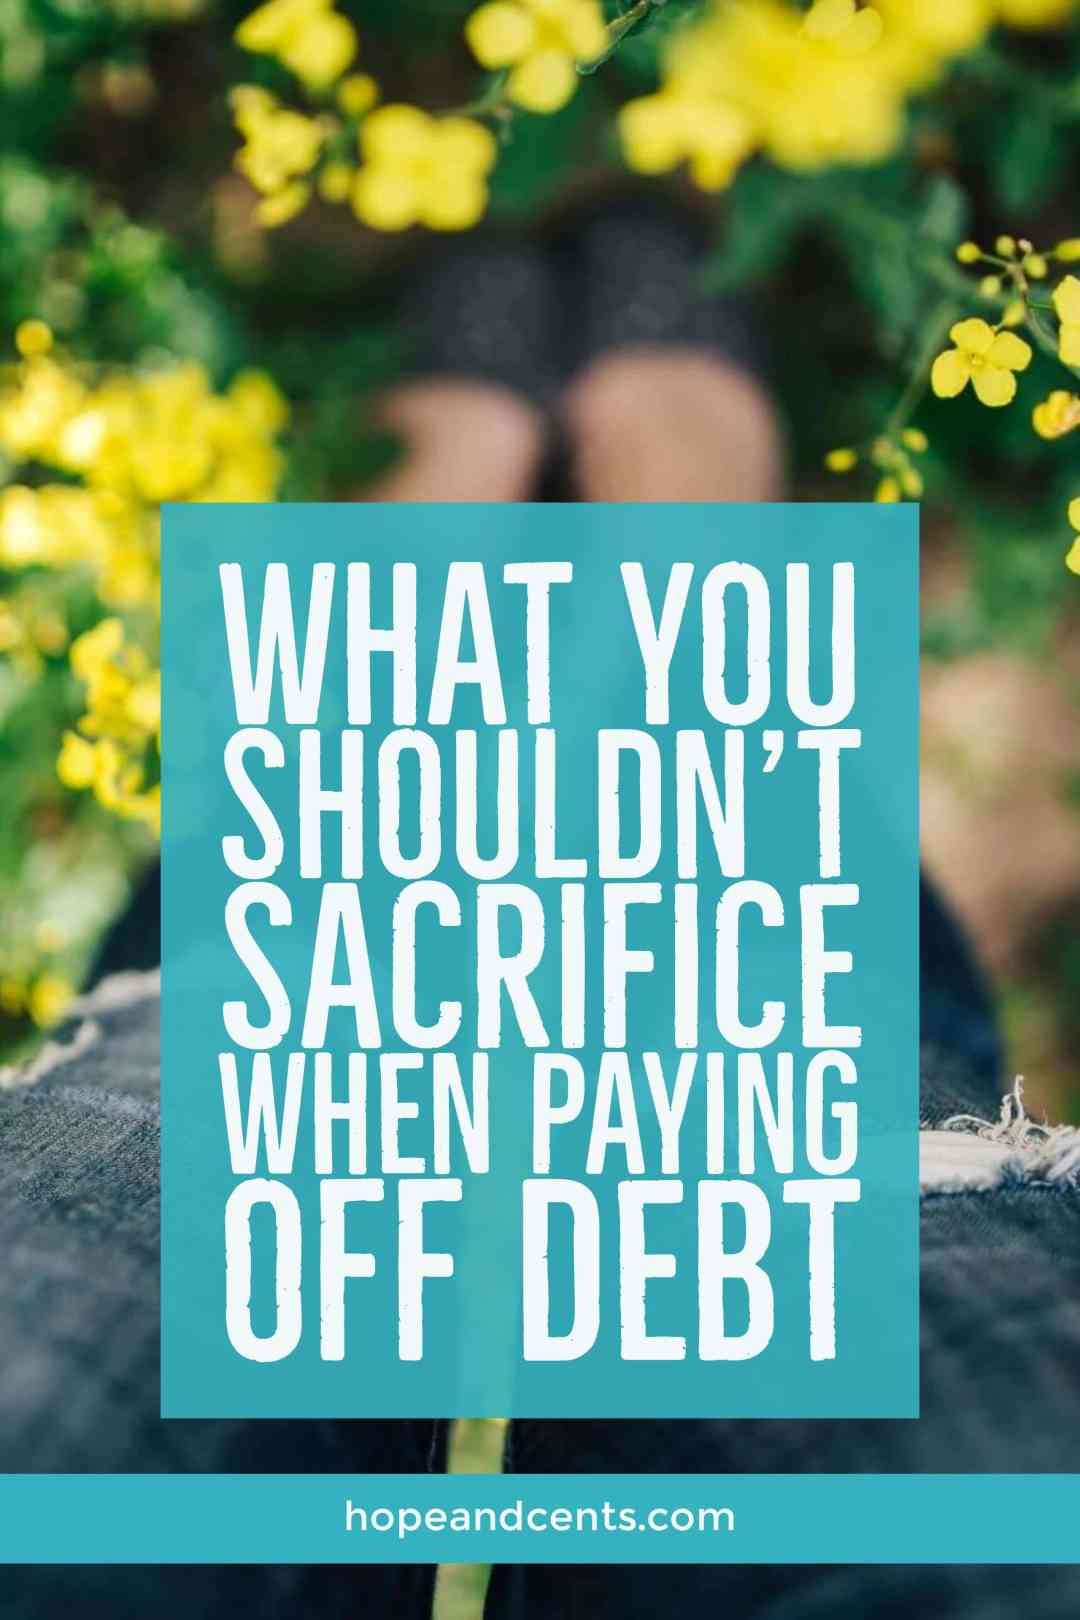 Are you paying off debt? You're probably doing all you can to bring in additional income and cut back on your spending. But it's possible you may be sacrificing some things you'll later regret.